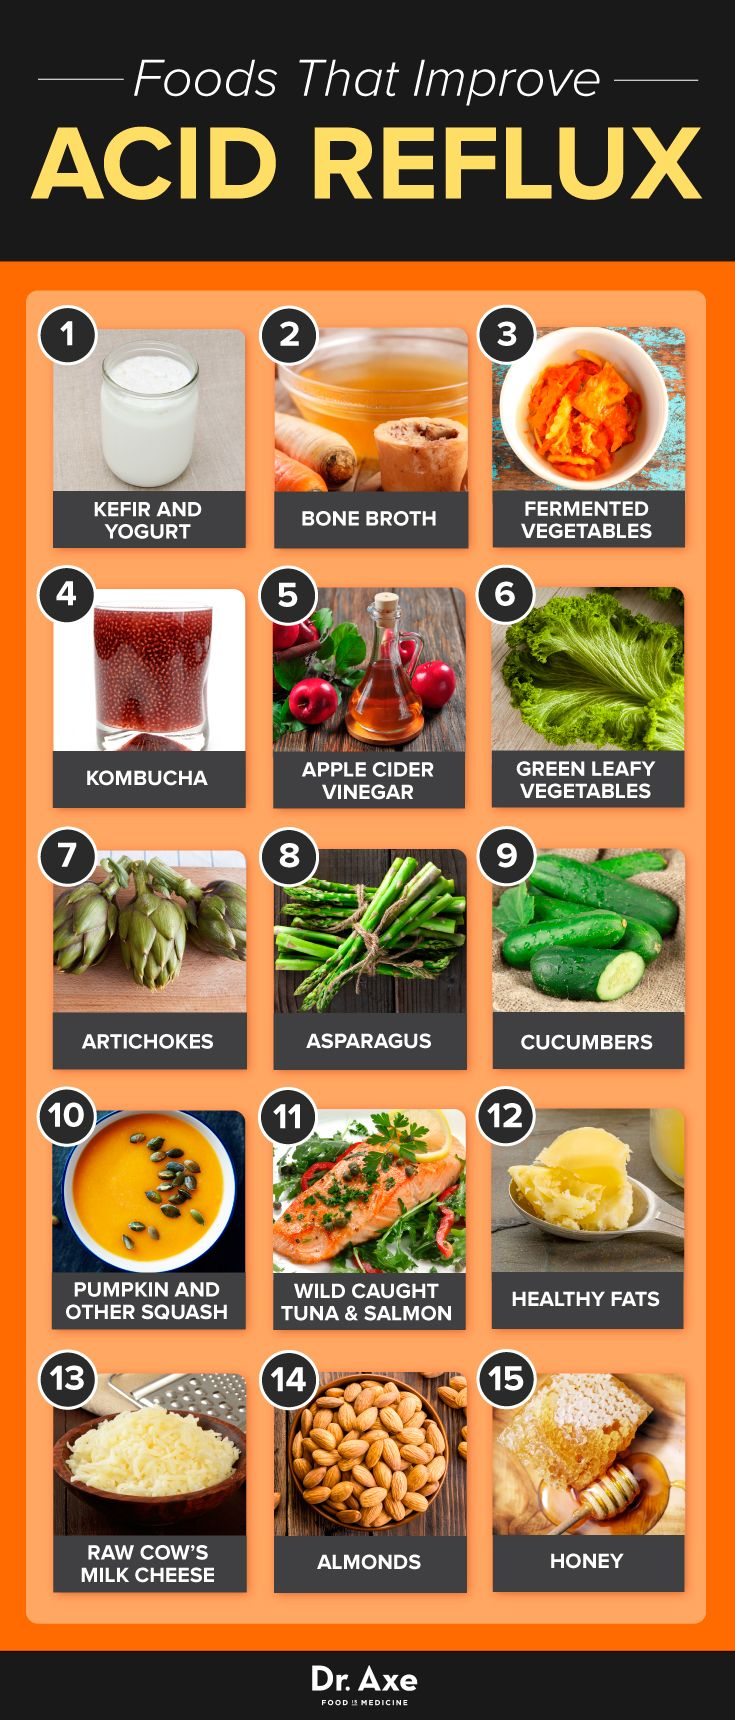 Foods that improve acid reflux symptoms www.draxe.com #health #holistic #natural